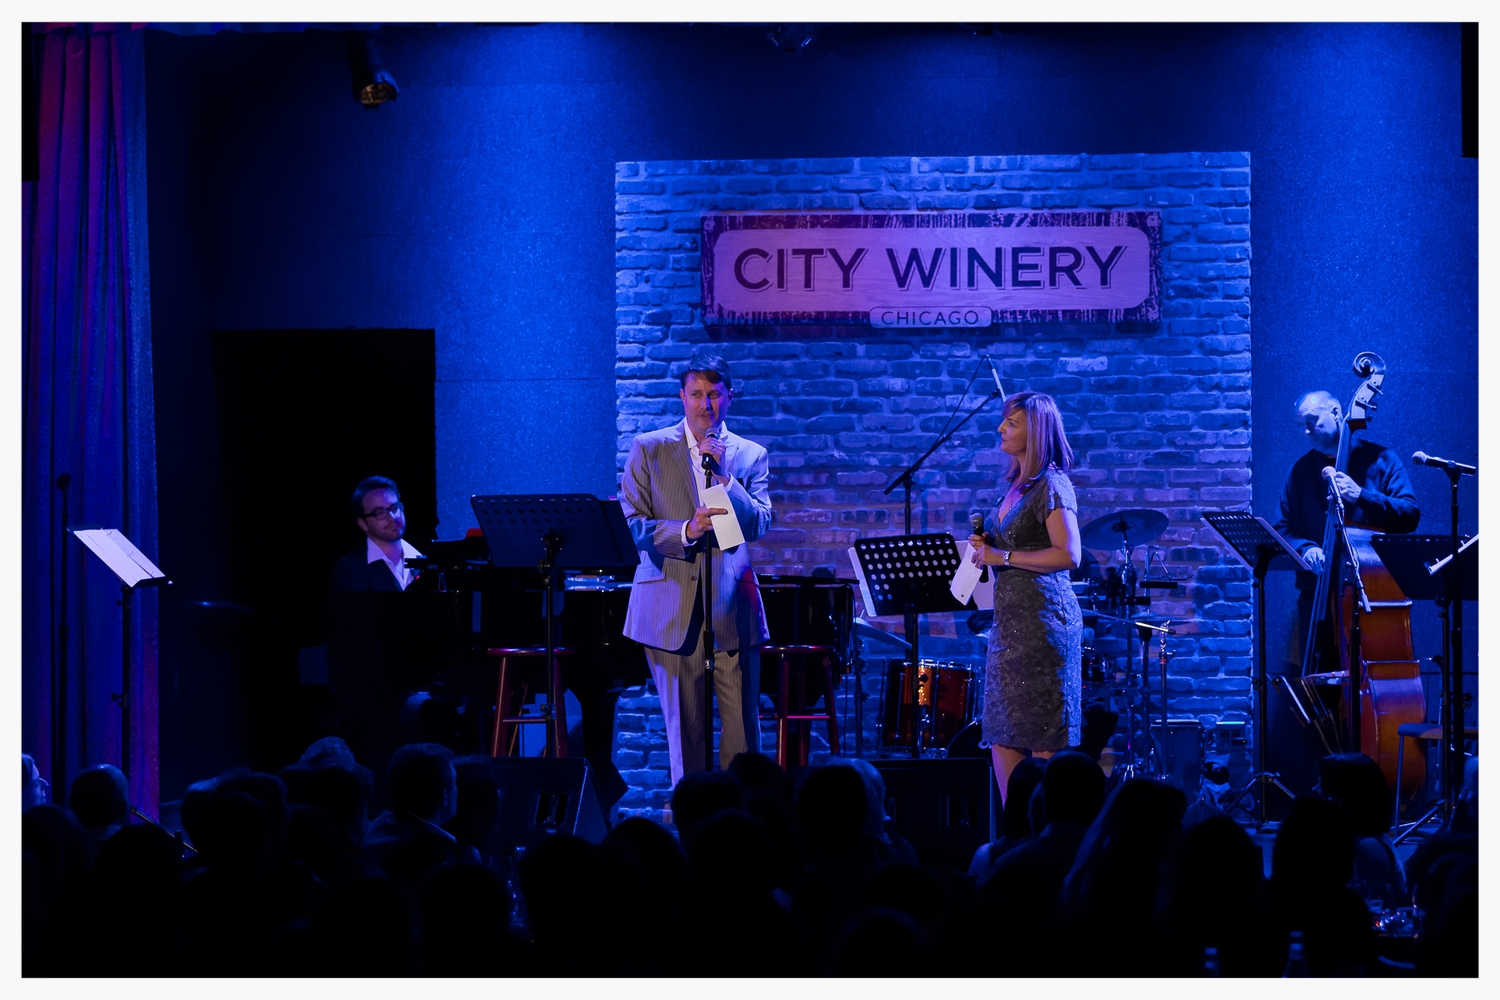 FWD at City Winery